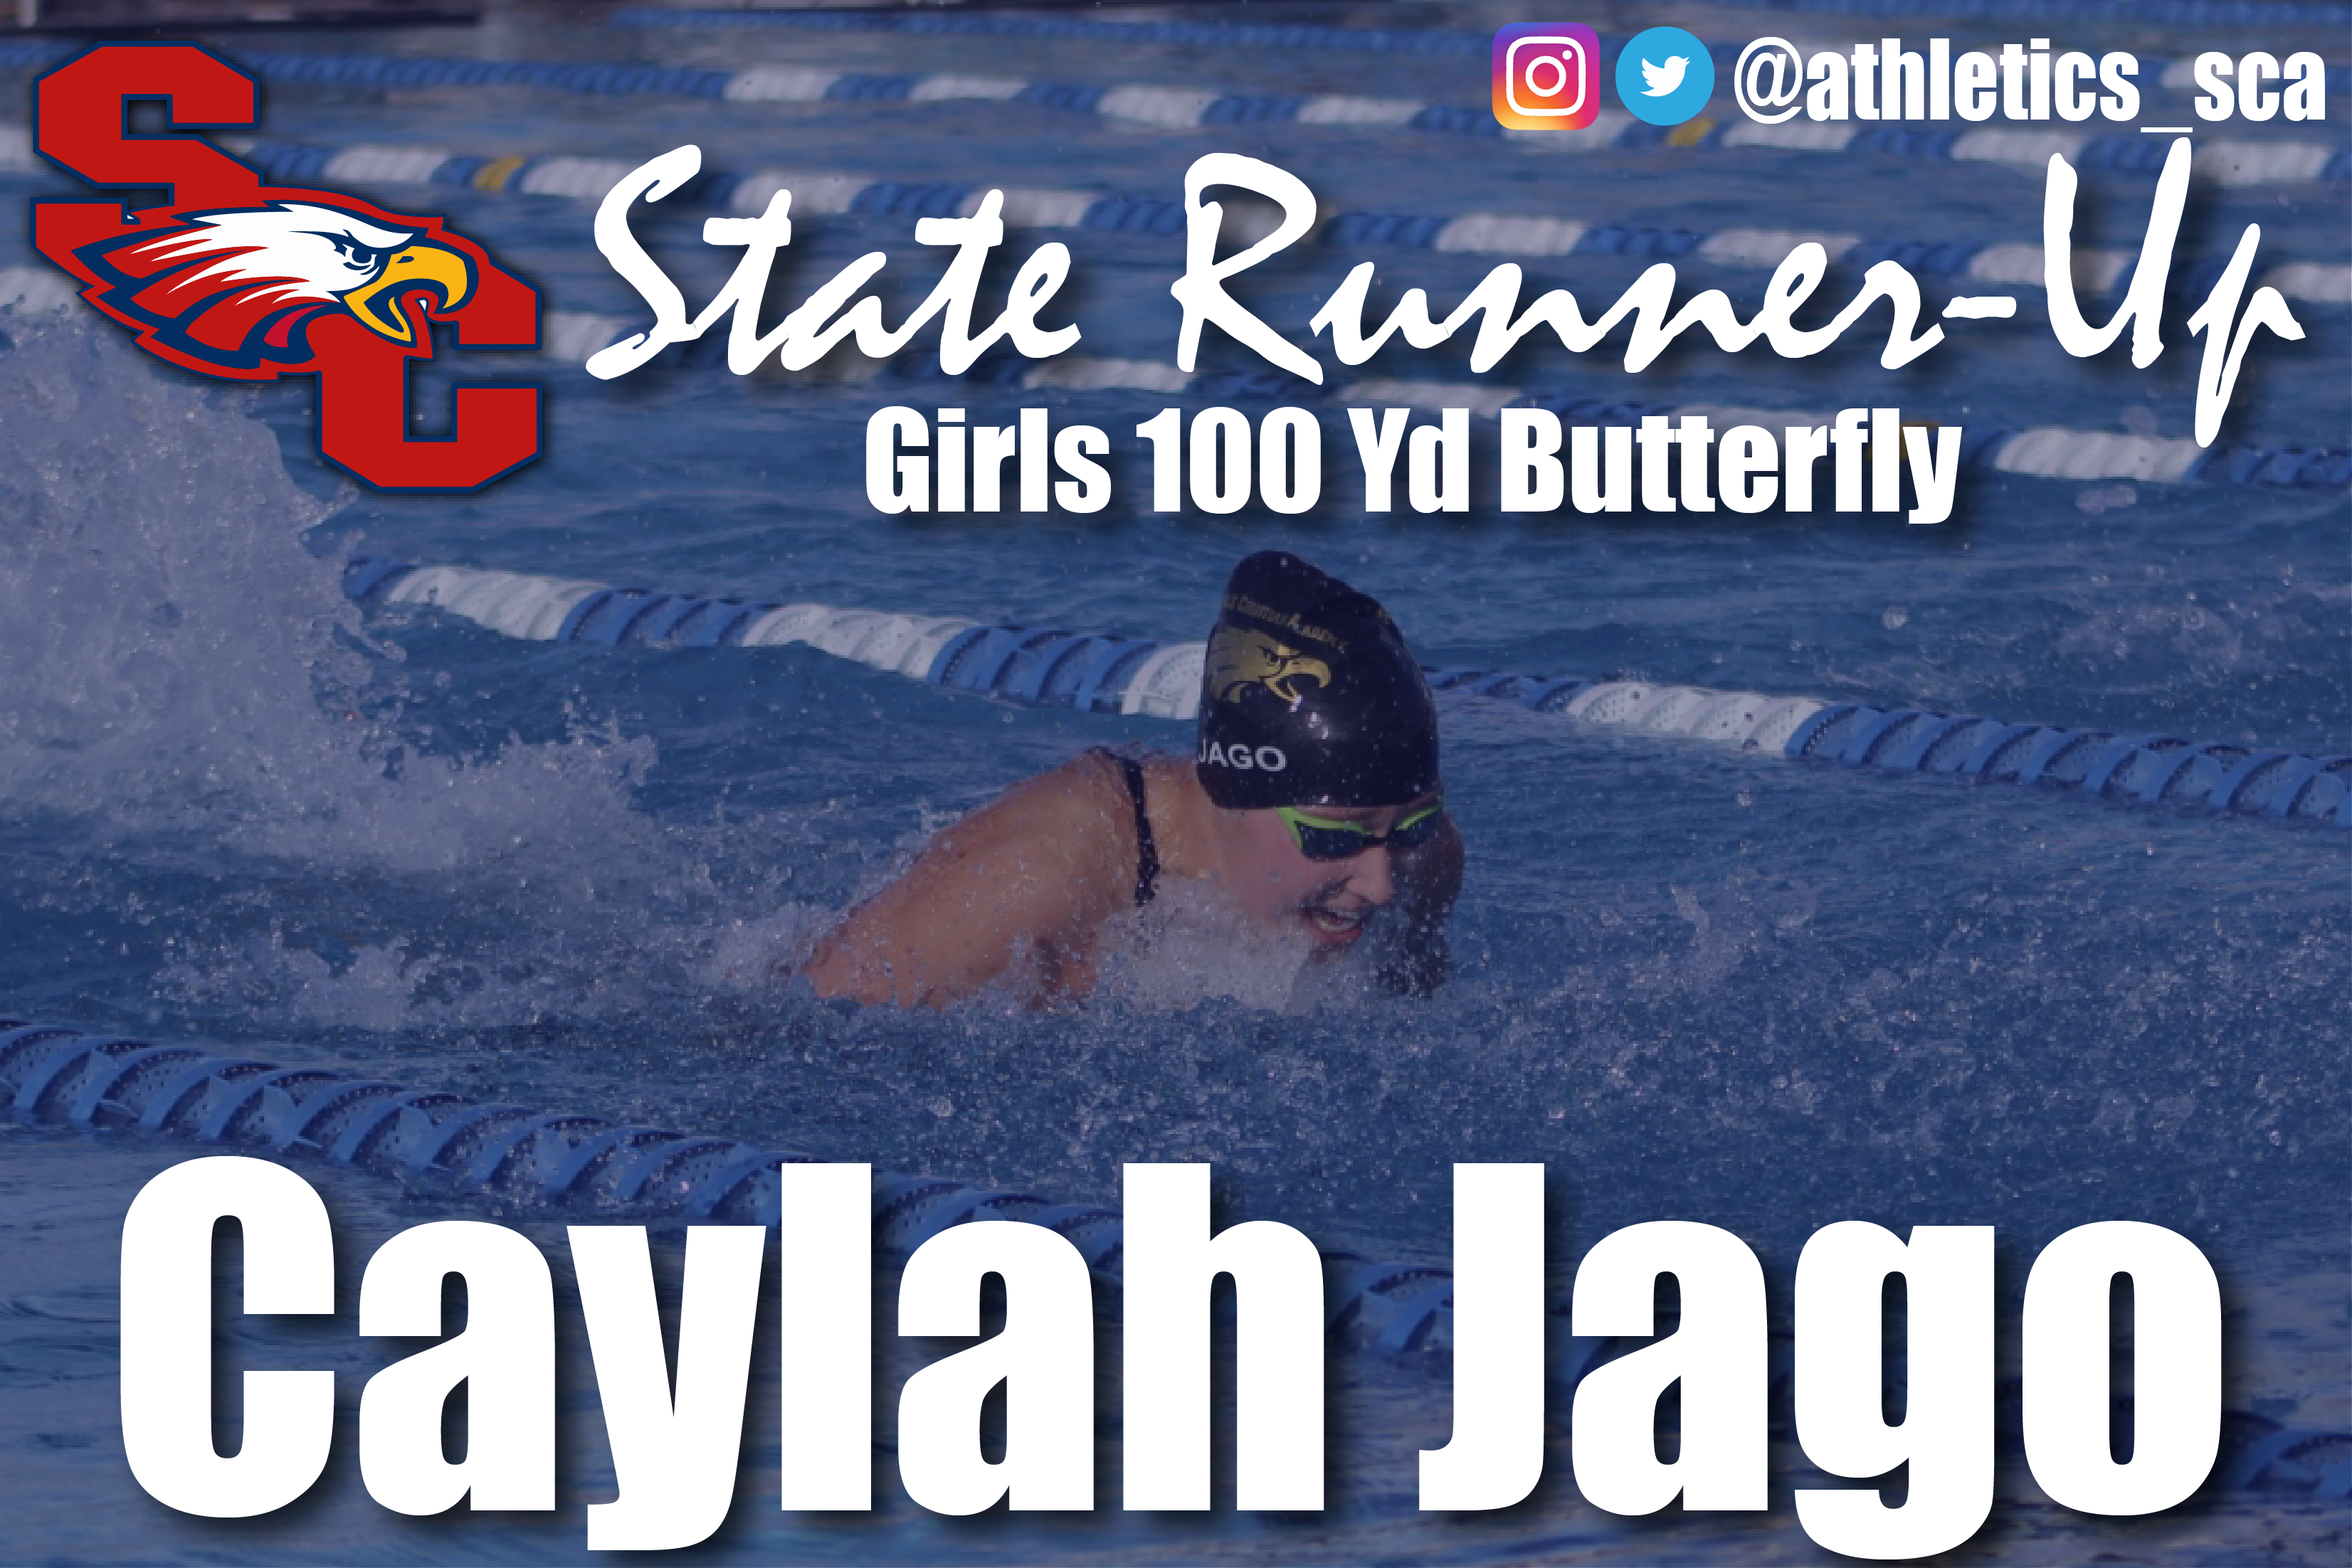 Sophmore Caylah Jago finishes as State Runner-Up in 100 yd Butterfly!